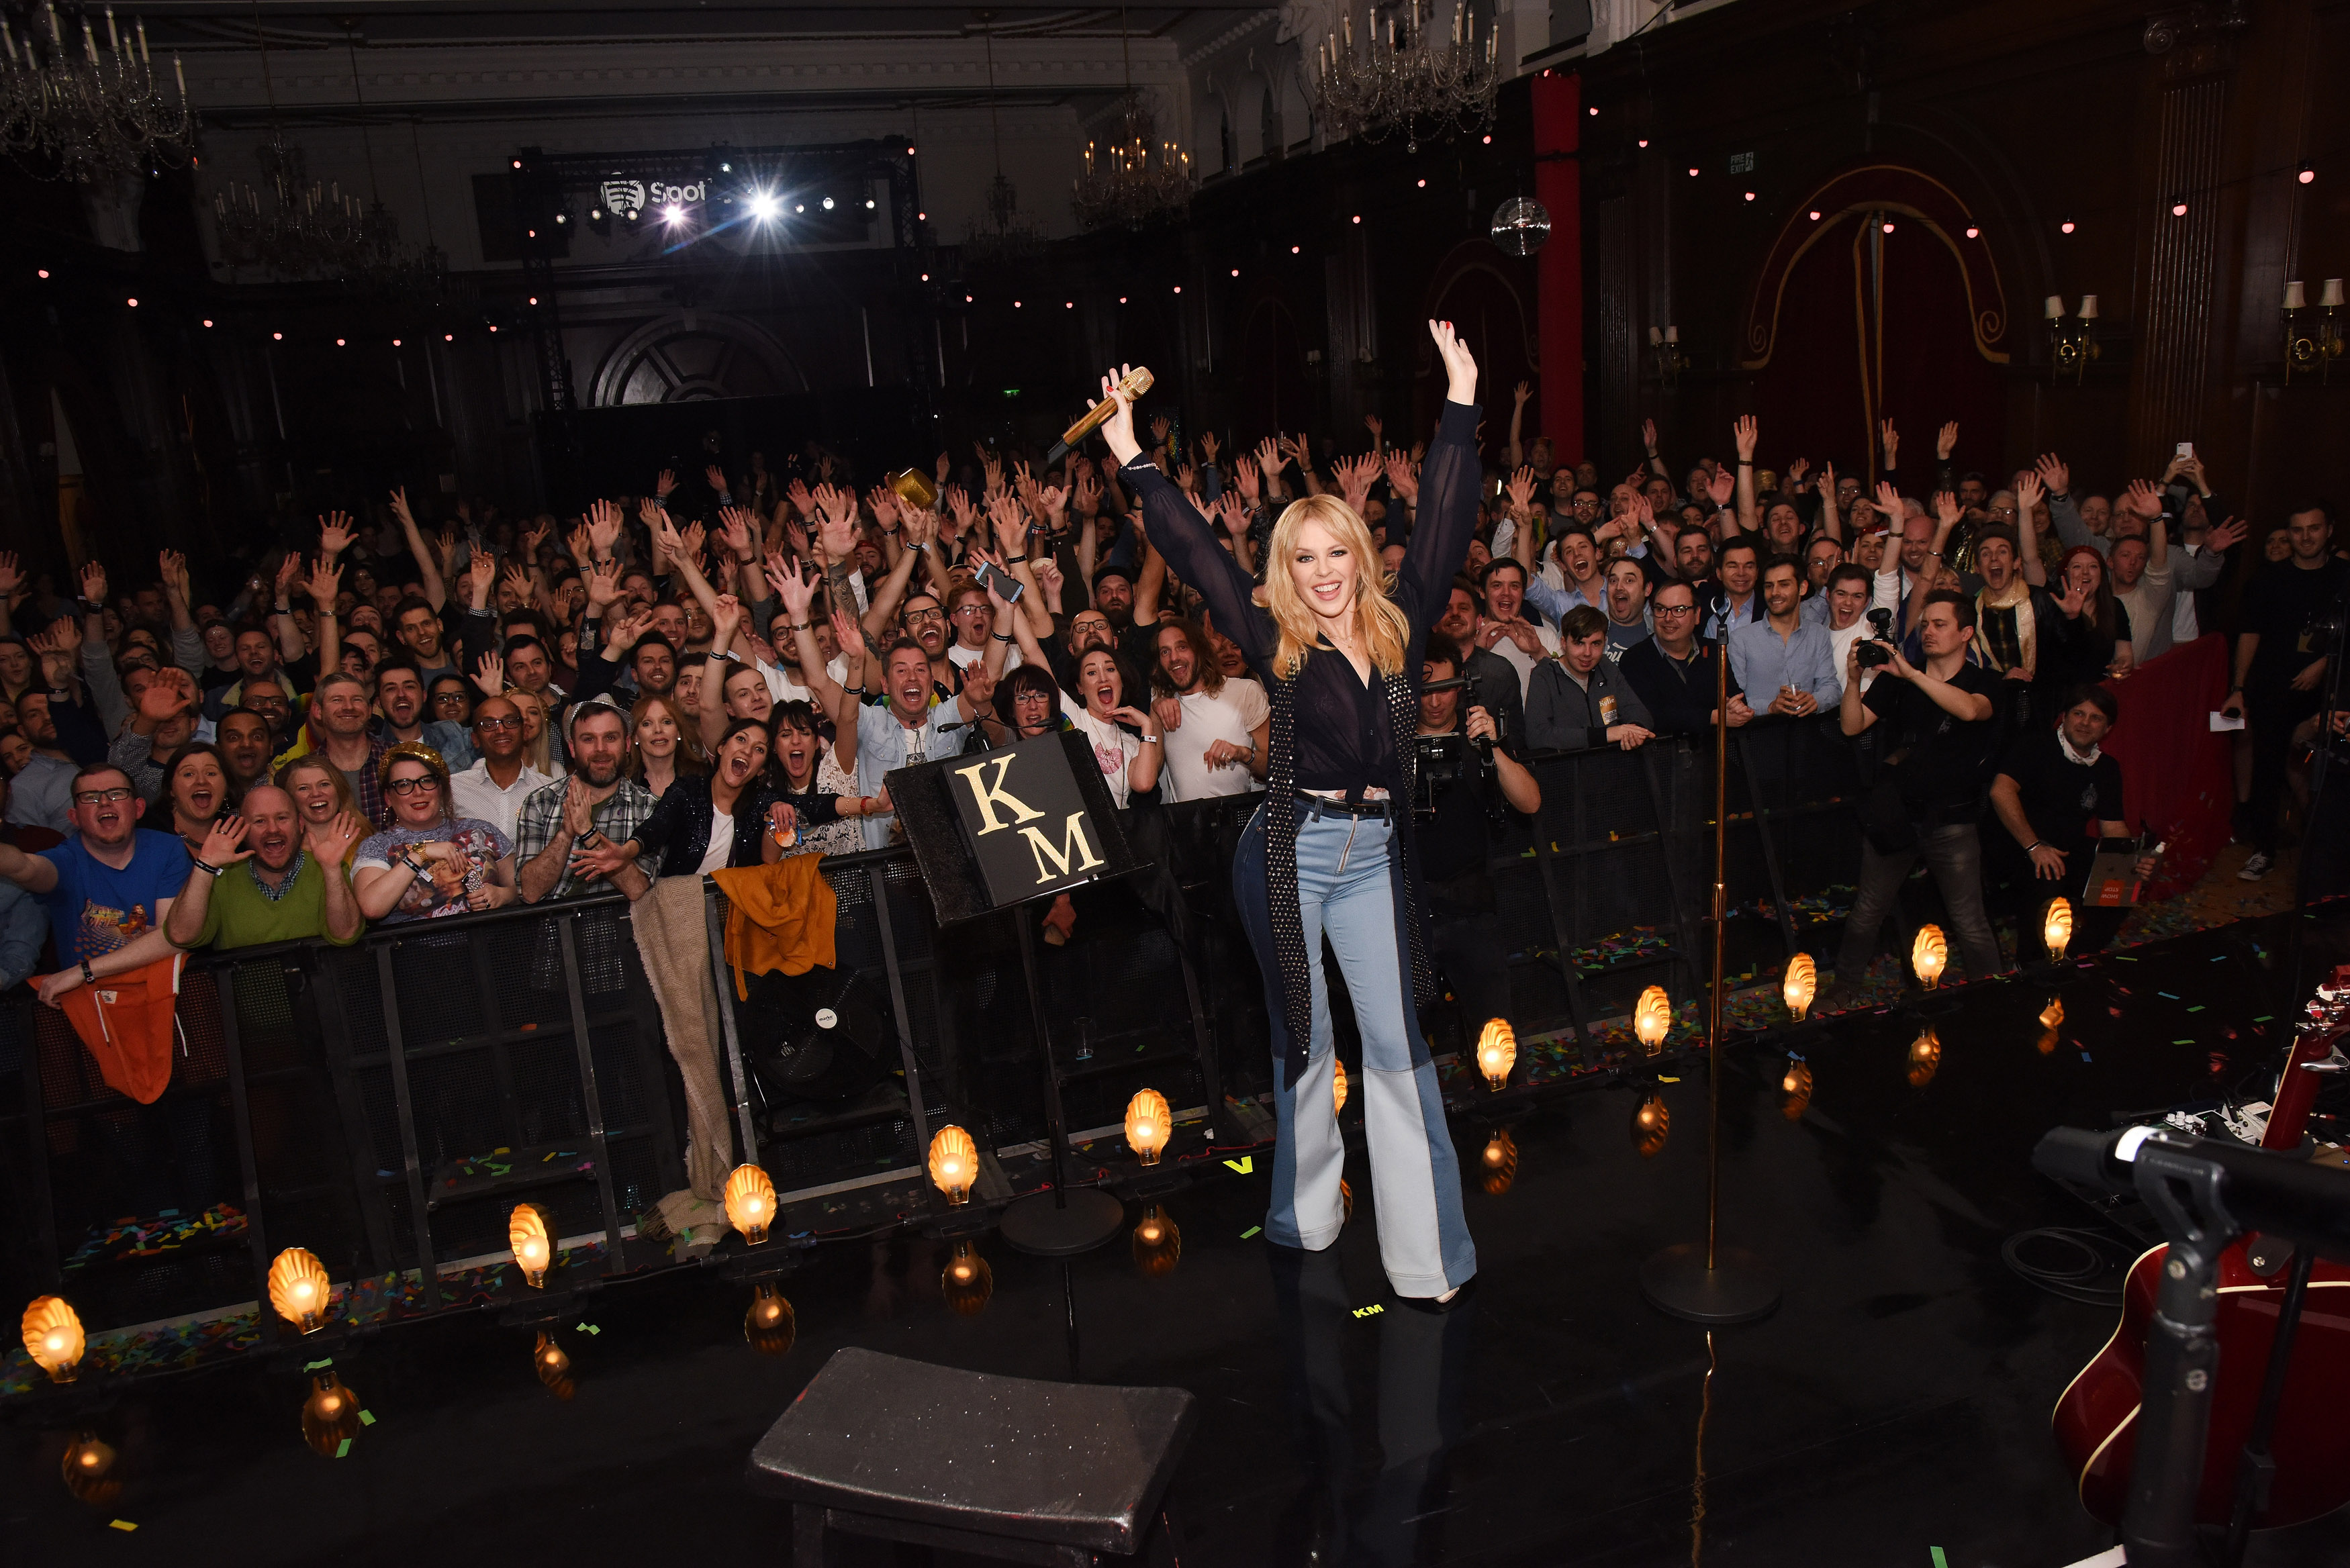 Kylie Minogue Performs To Her Spotify Premium Fans At London's Porchester Hall